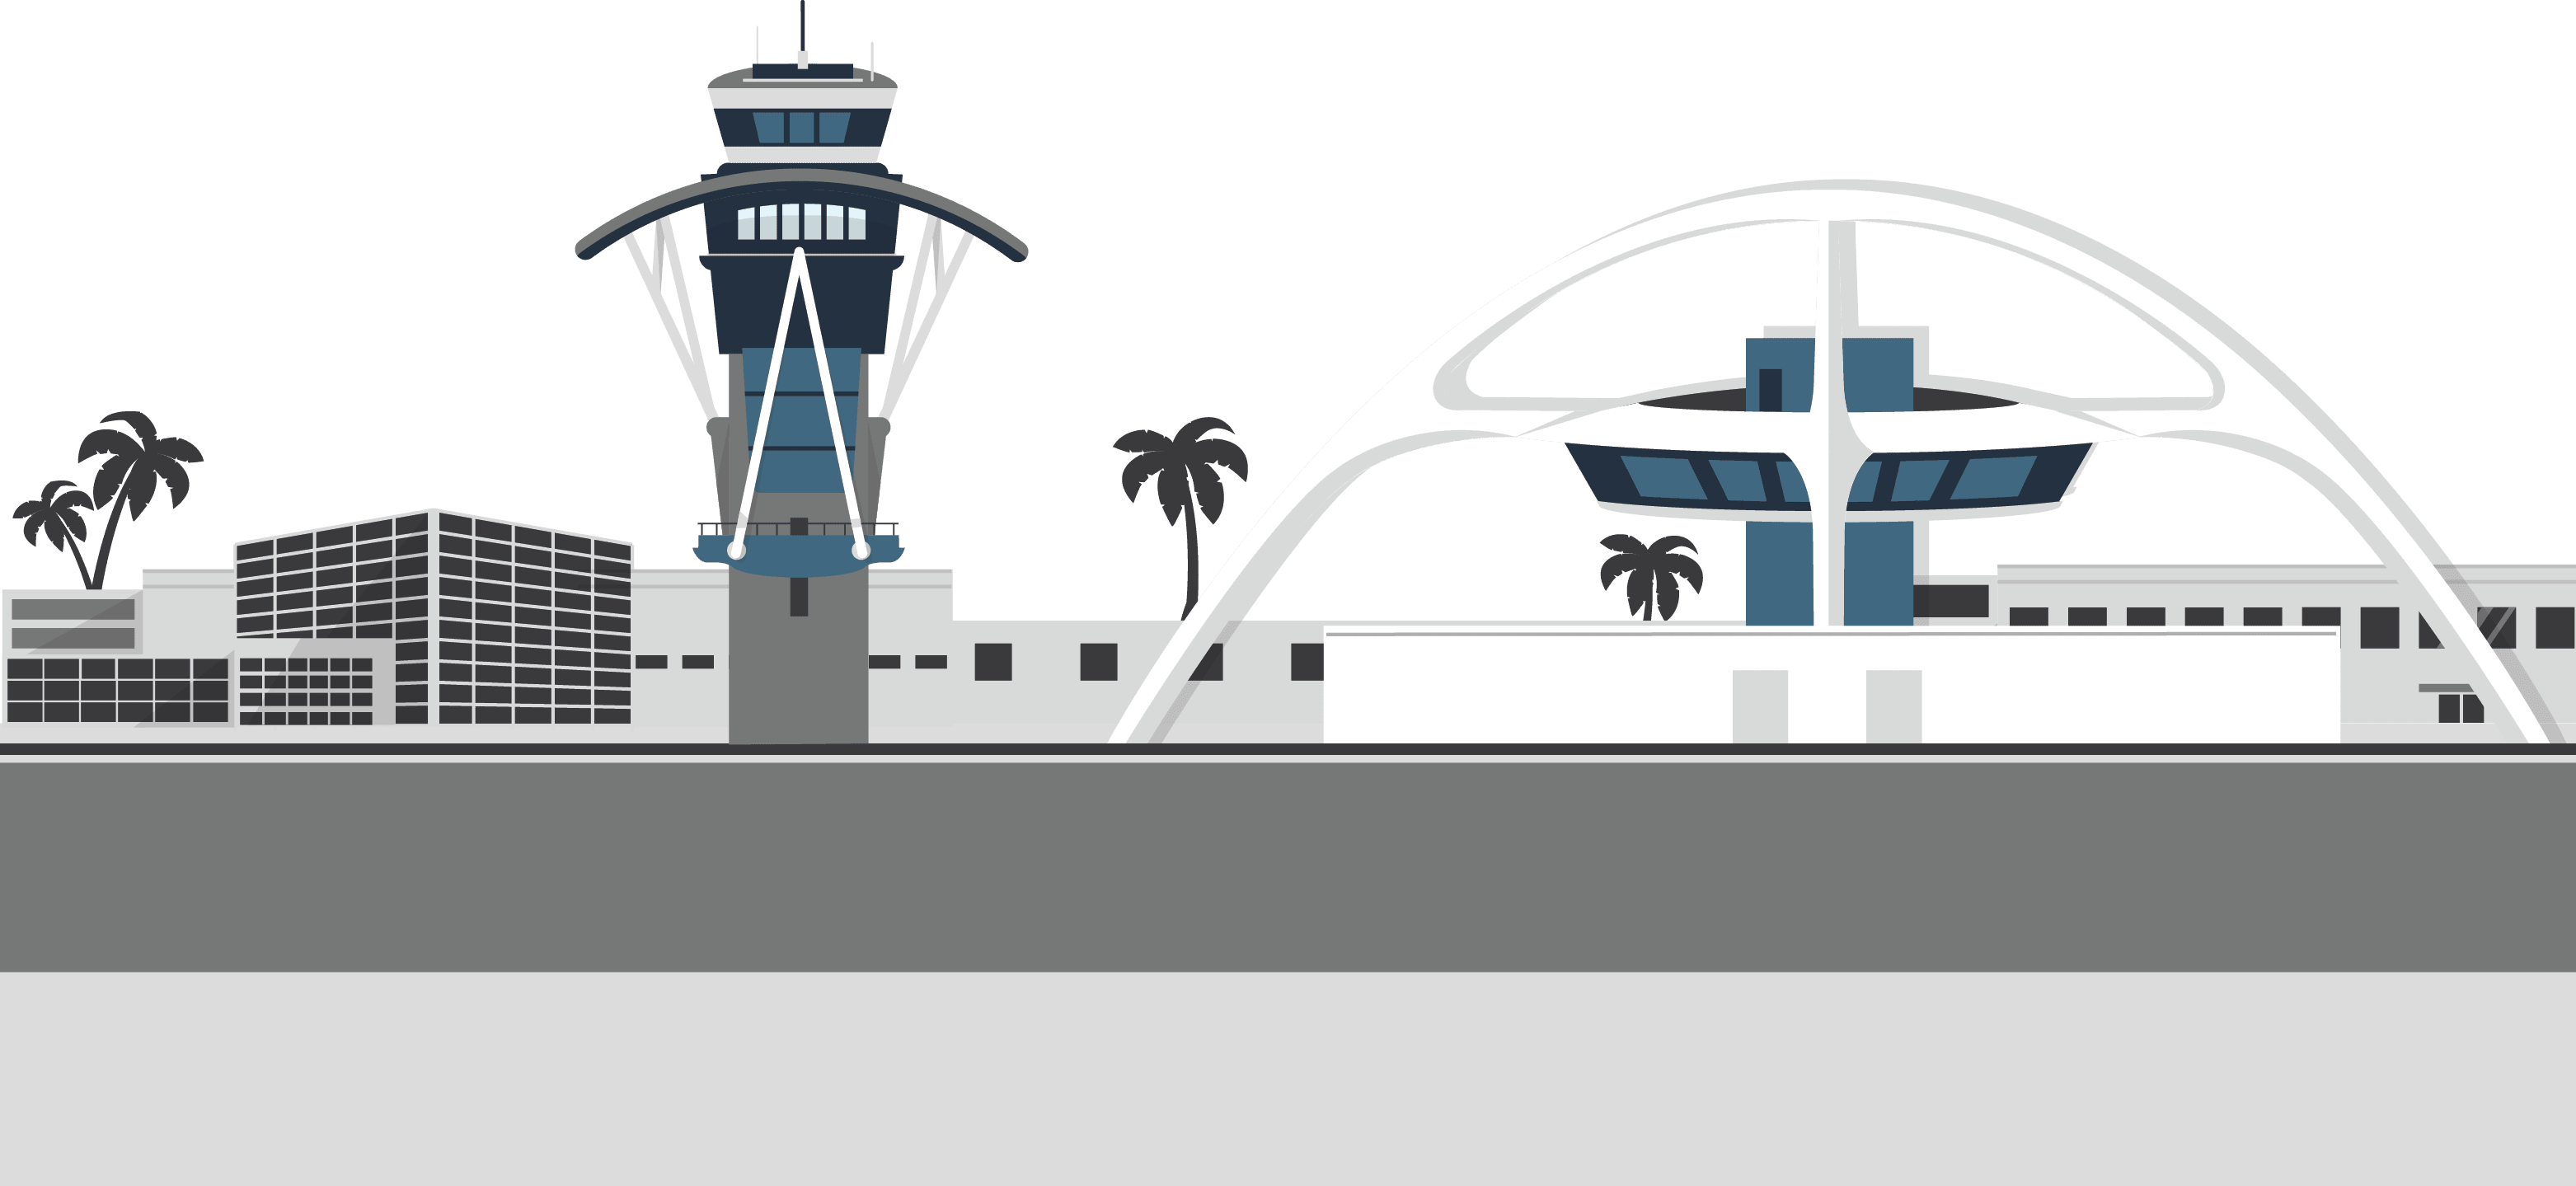 Tower clipart control. Airport png transparent images